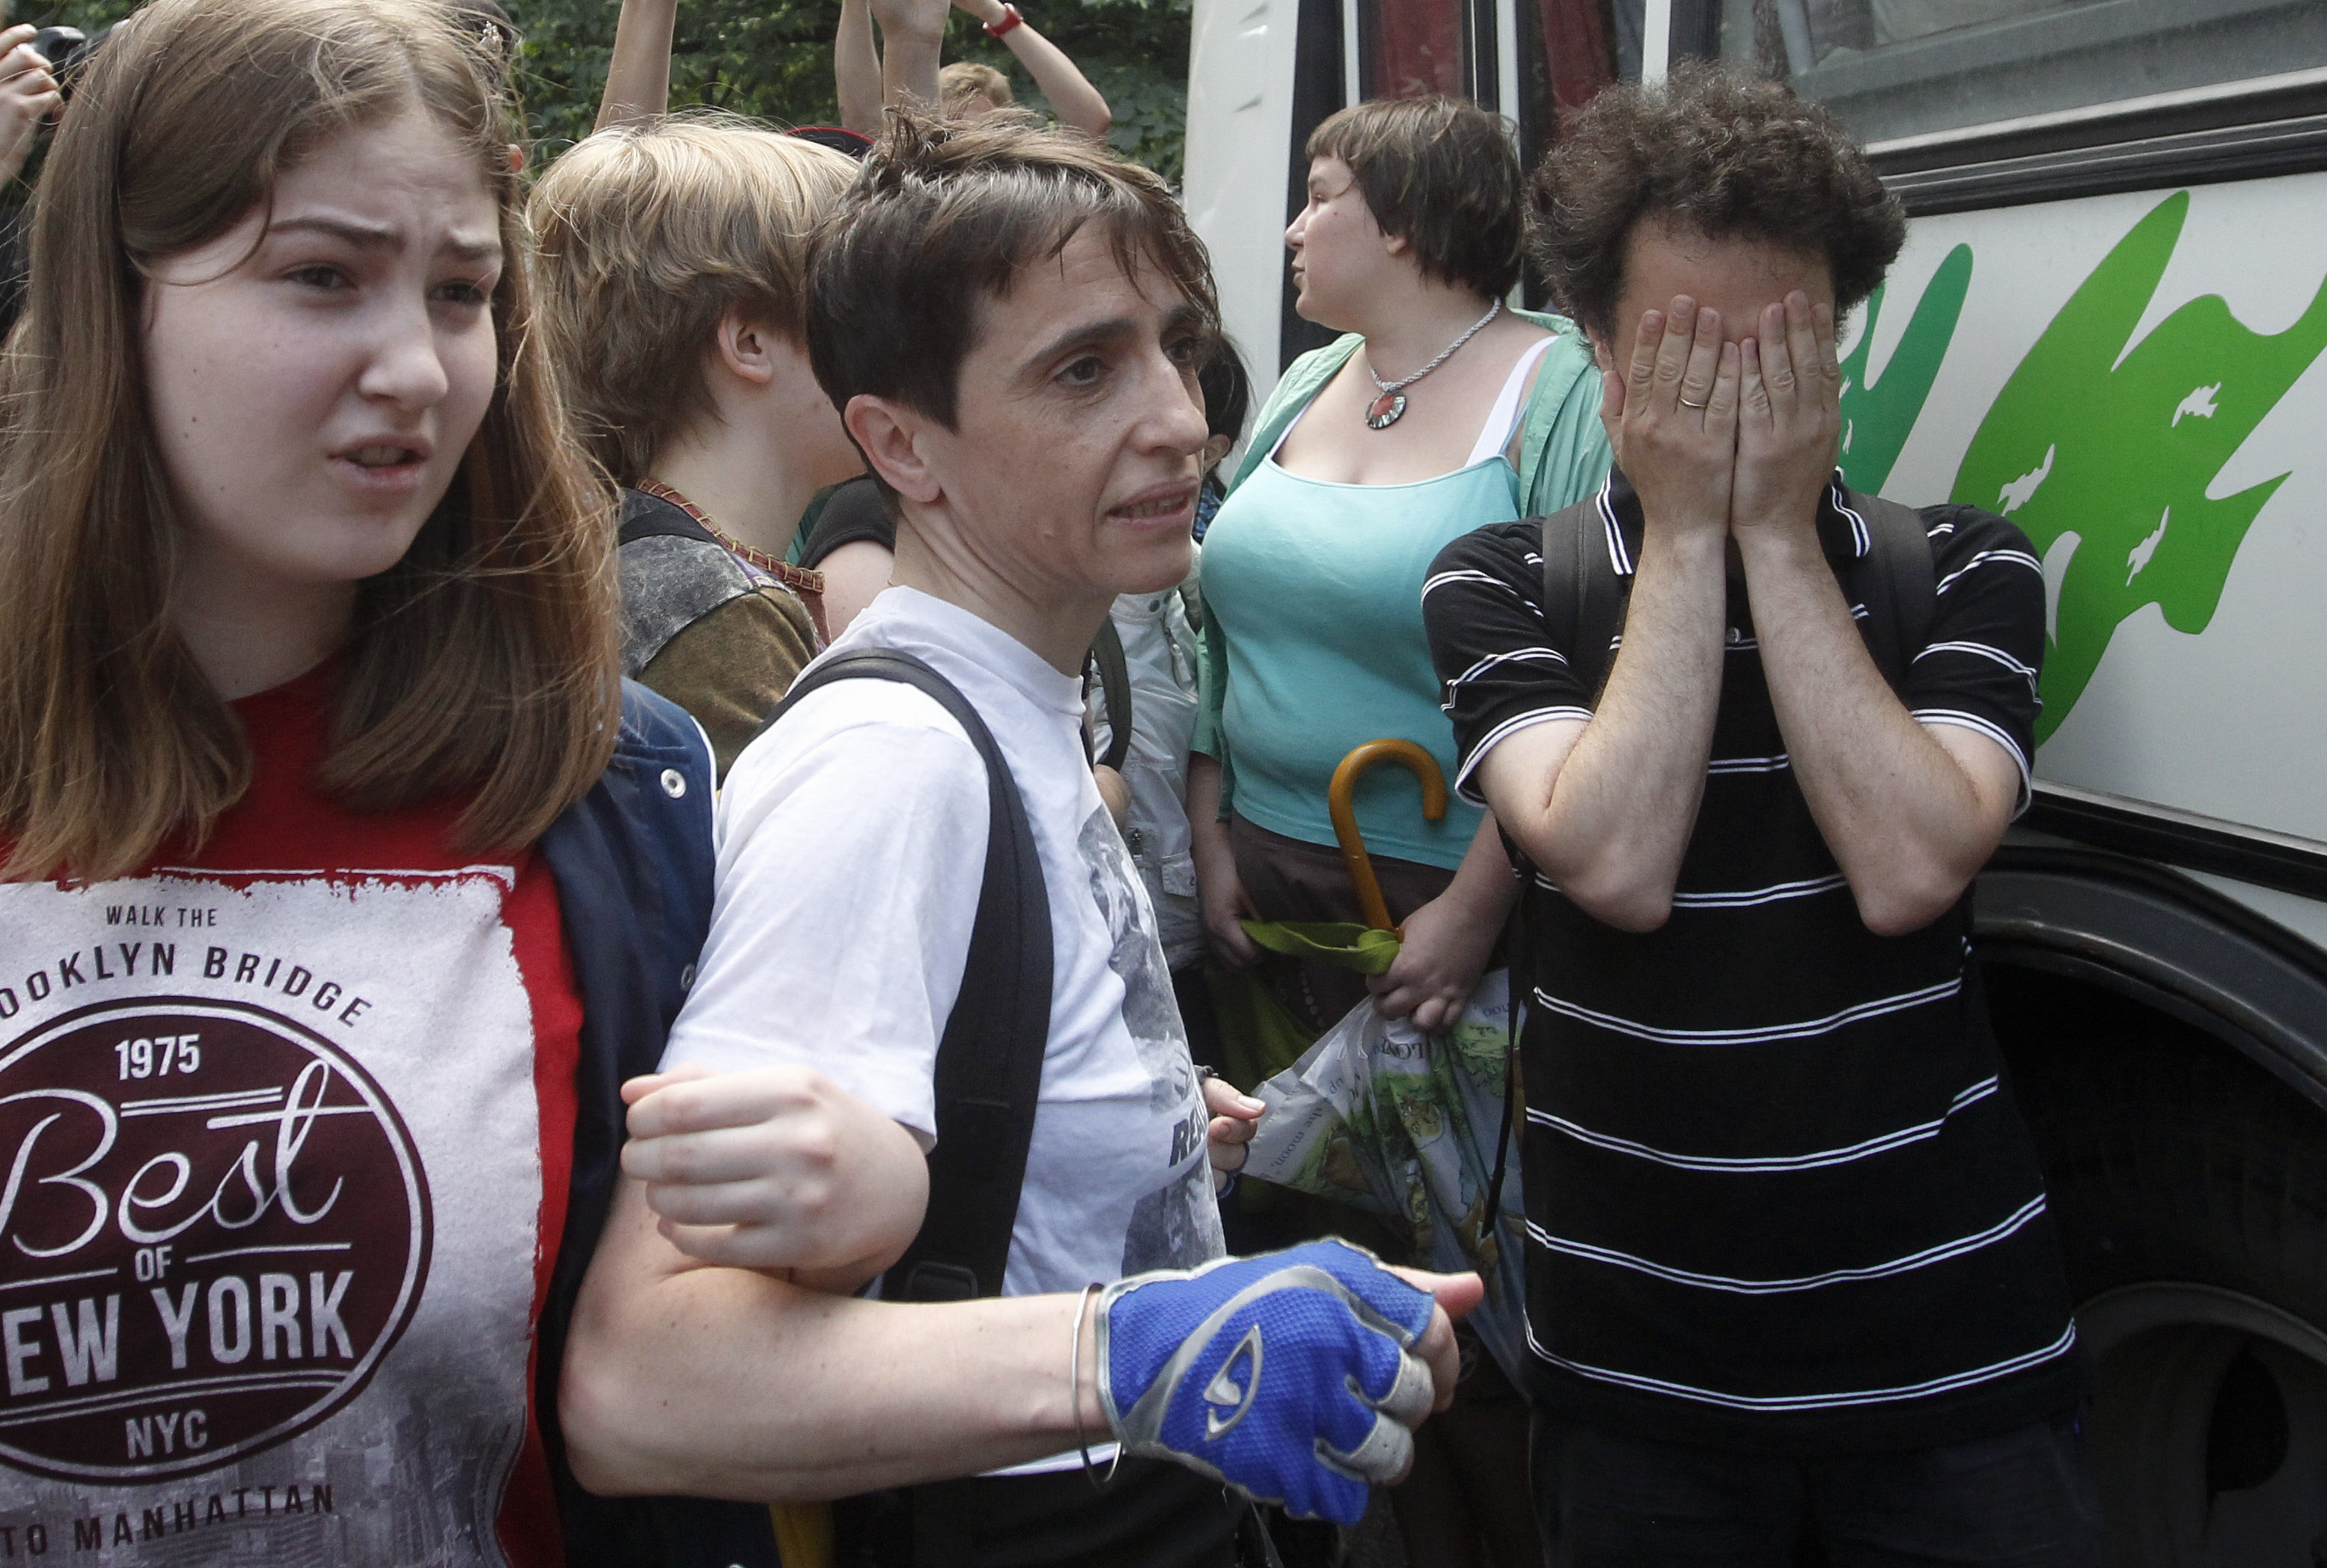 Russia-born U.S. journalist Masha Gessen (center) in a 2013 protest in Moscow against a proposed new law that would ban gay rights rallies.